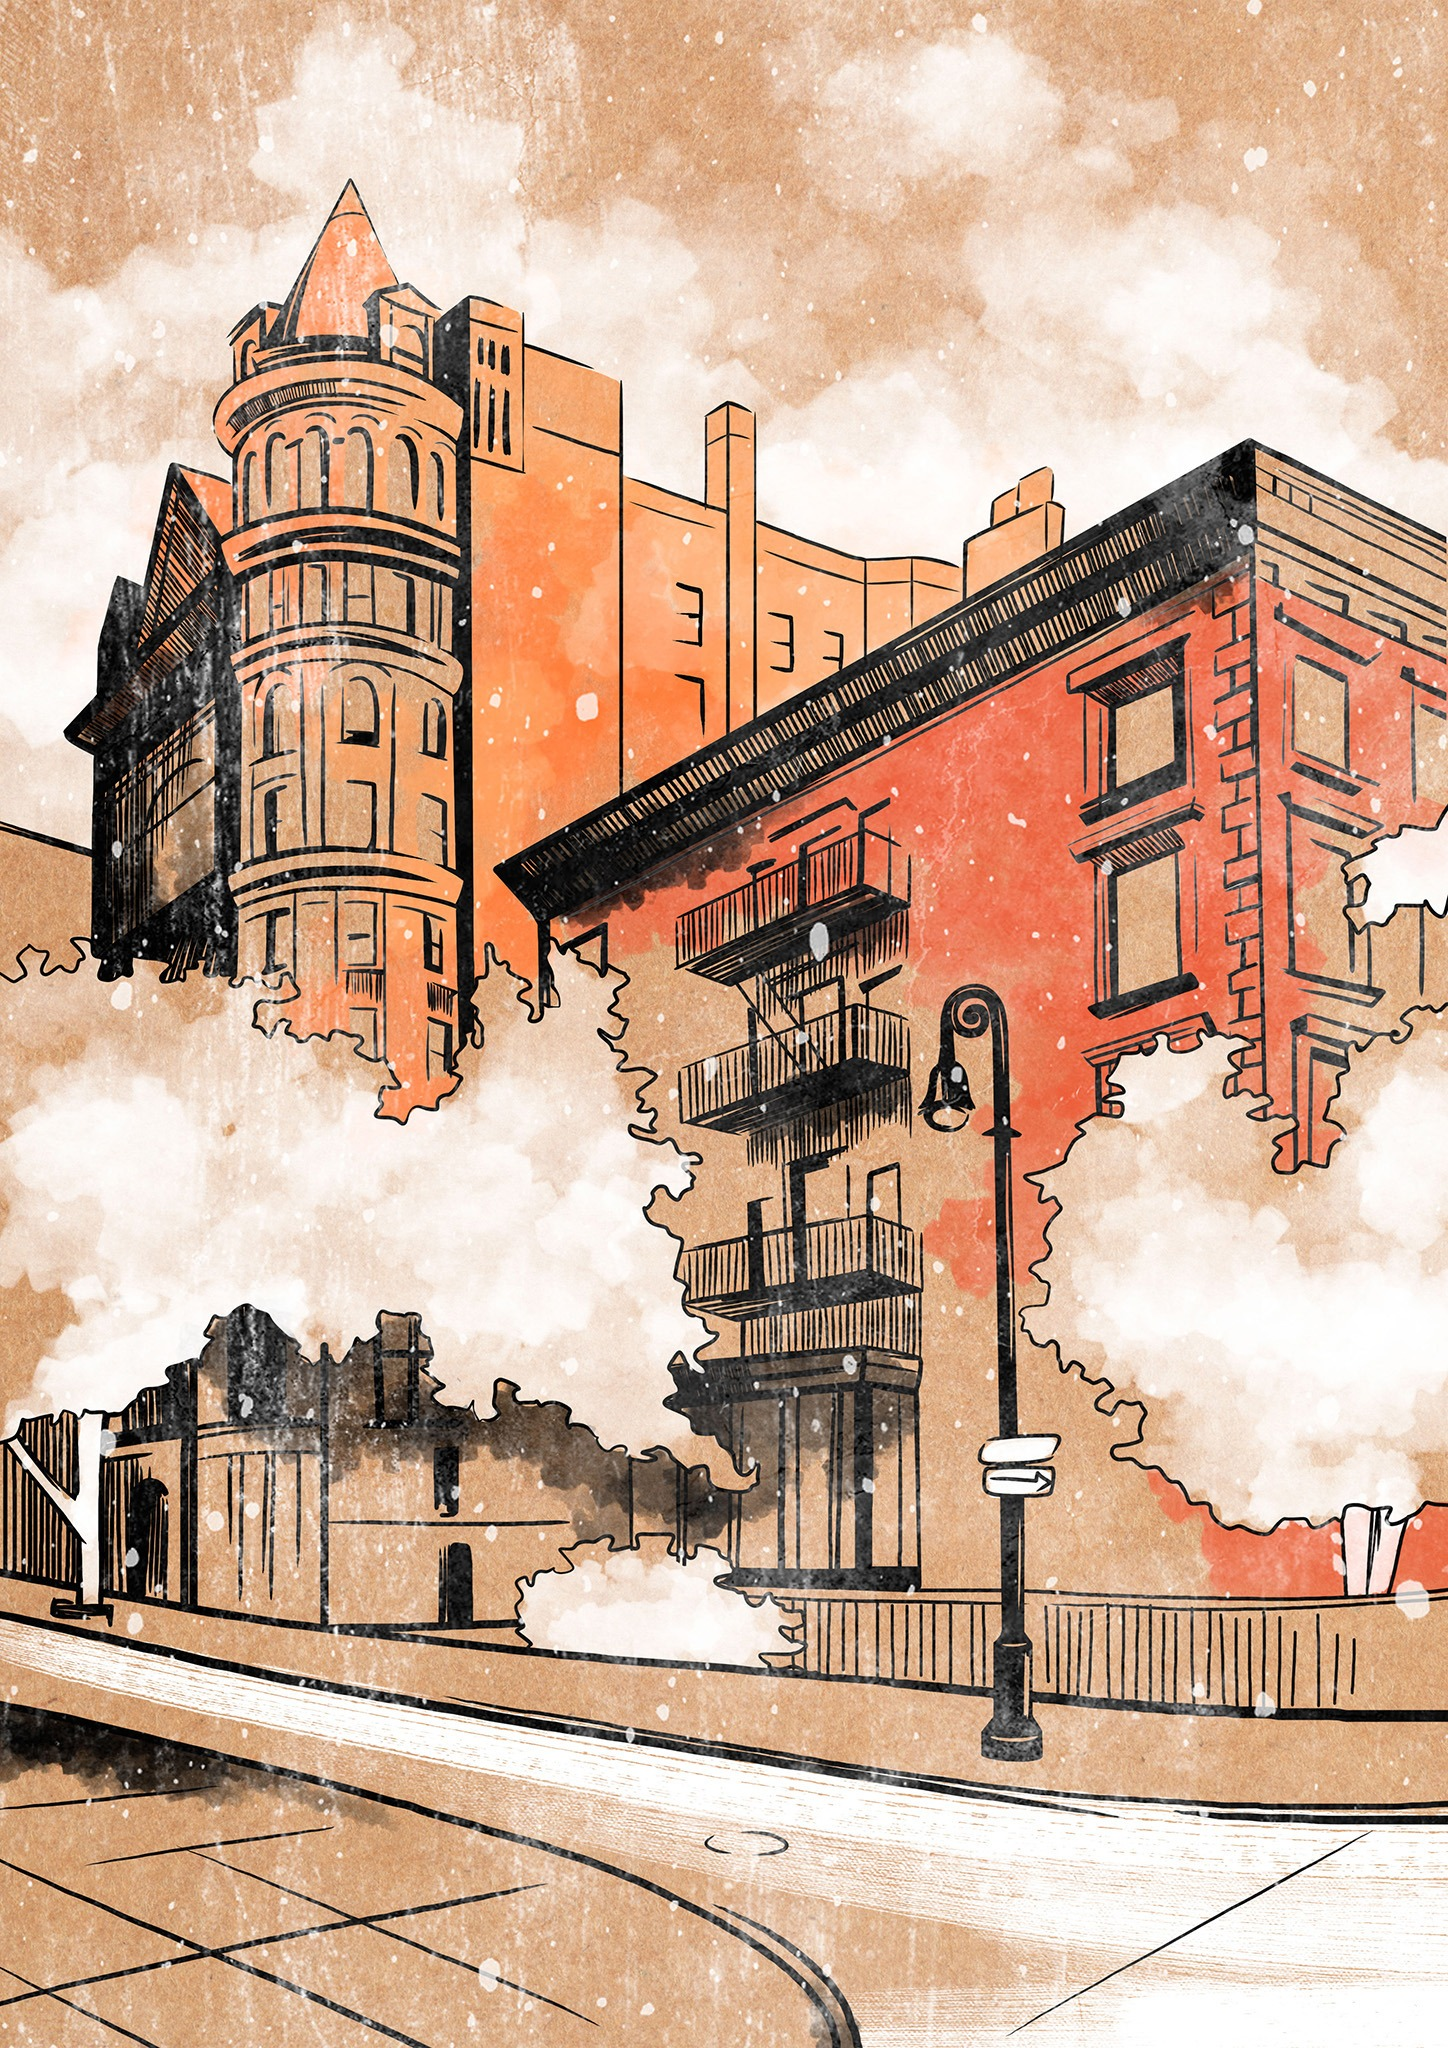 Illustration du quartier Brooklyn Heights de New York avec une teinte orangée